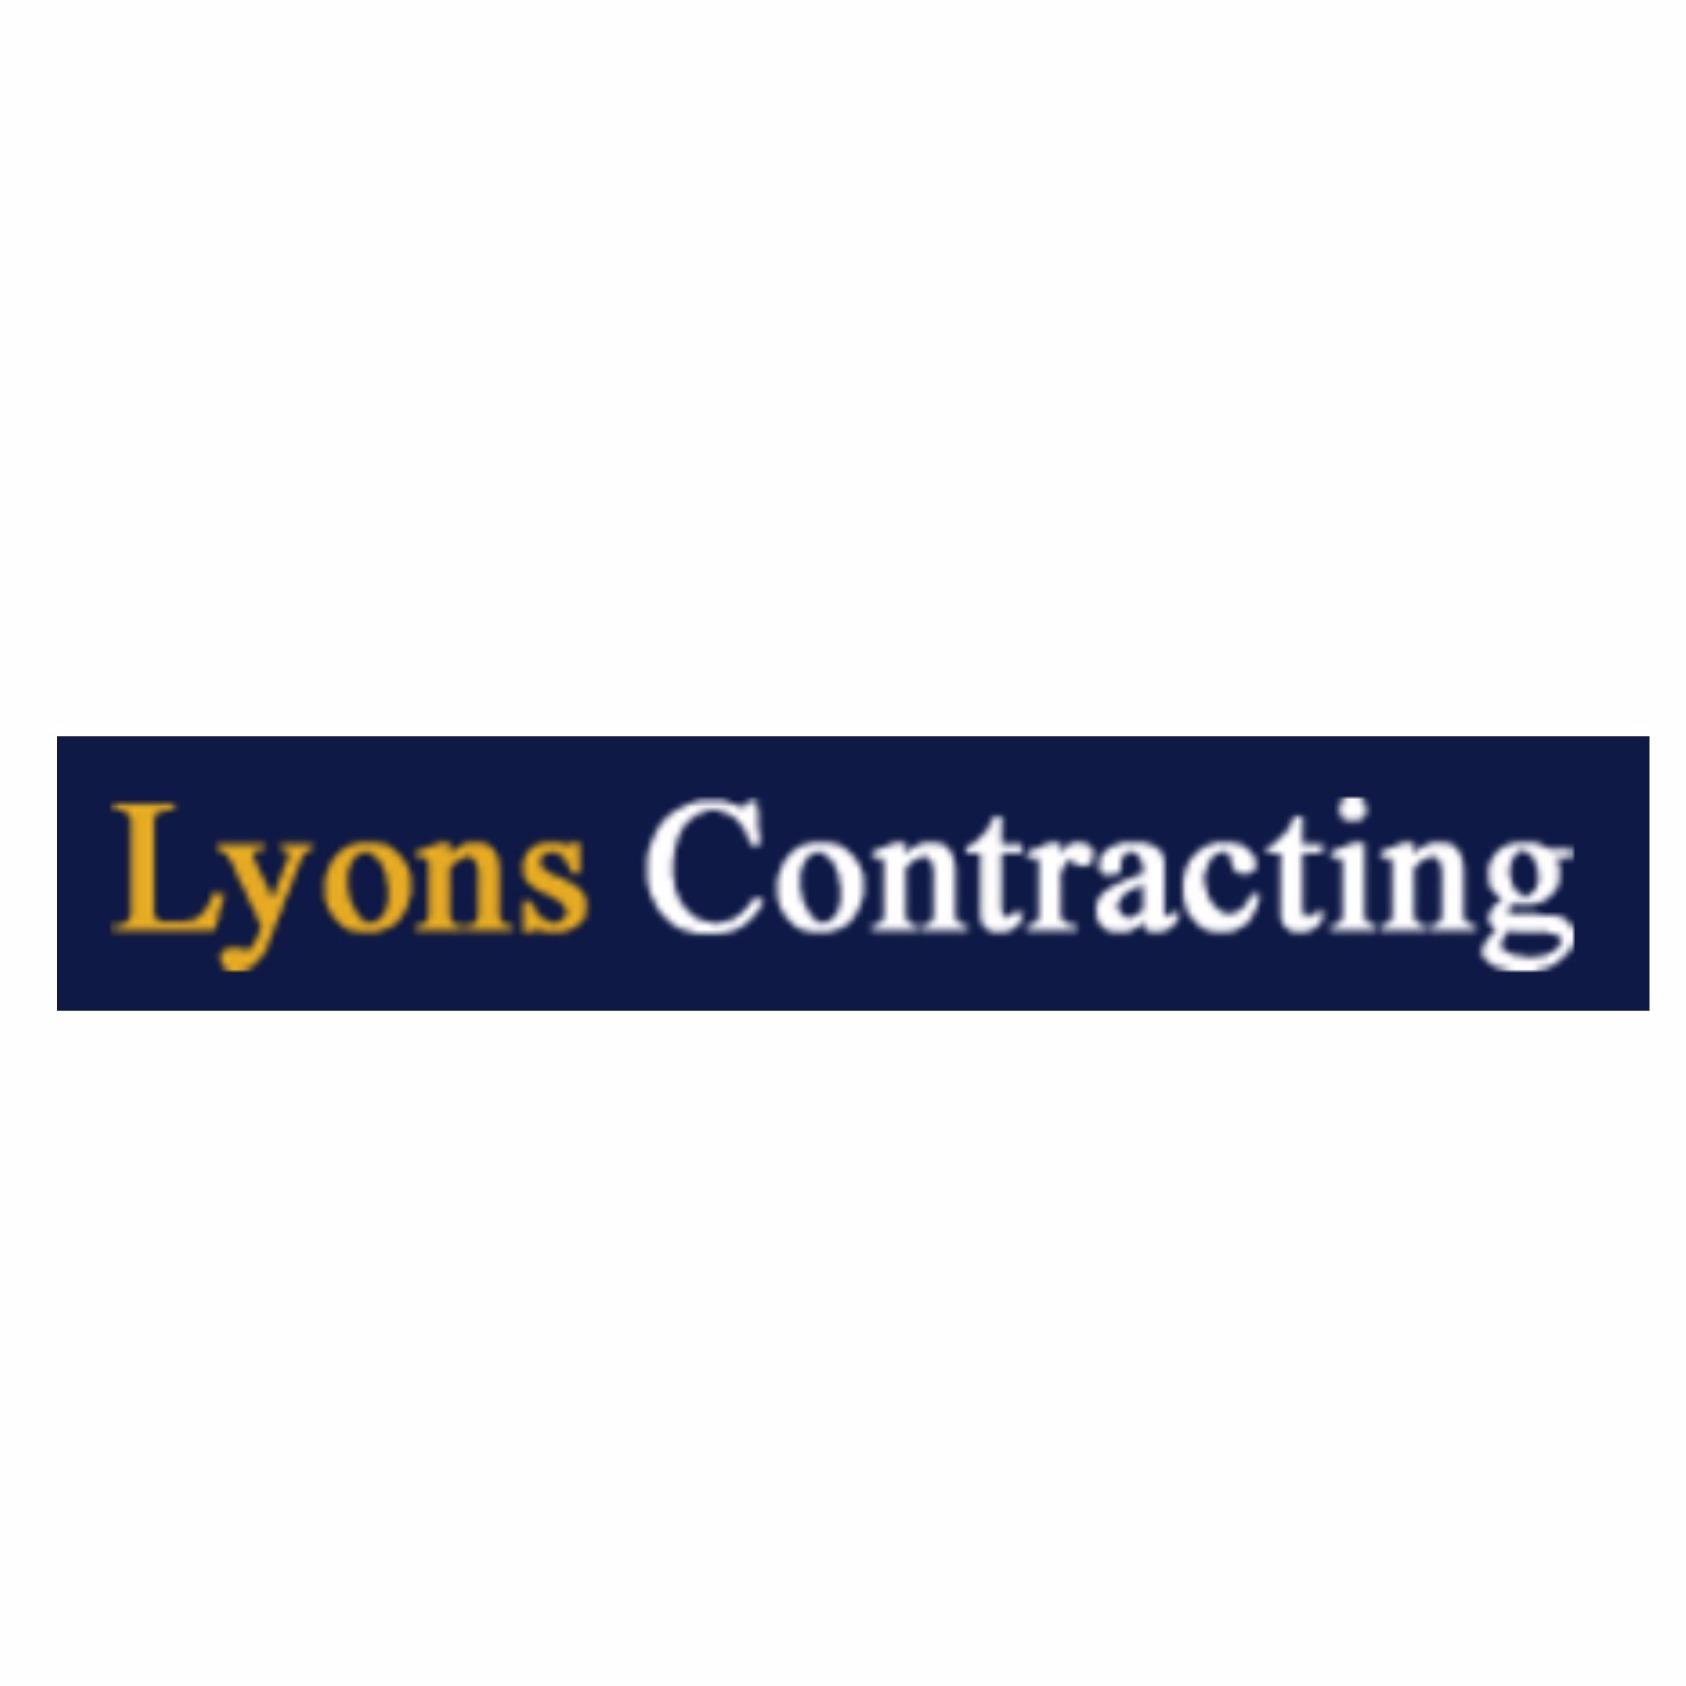 Lyons Contracting